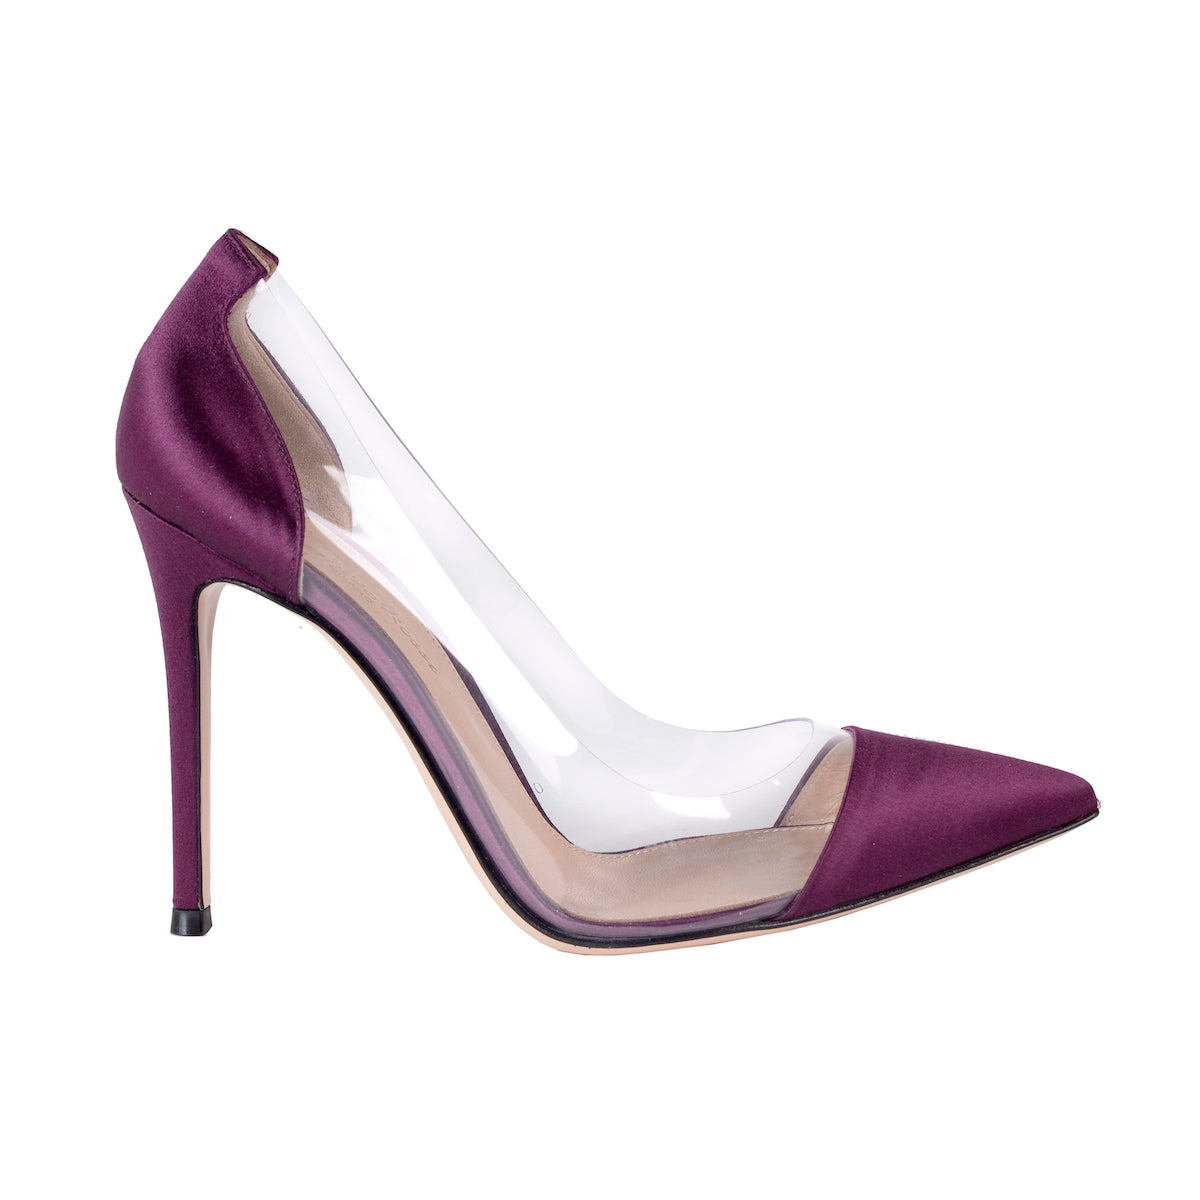 Clear Heels with Purple Satin Toe and Heel